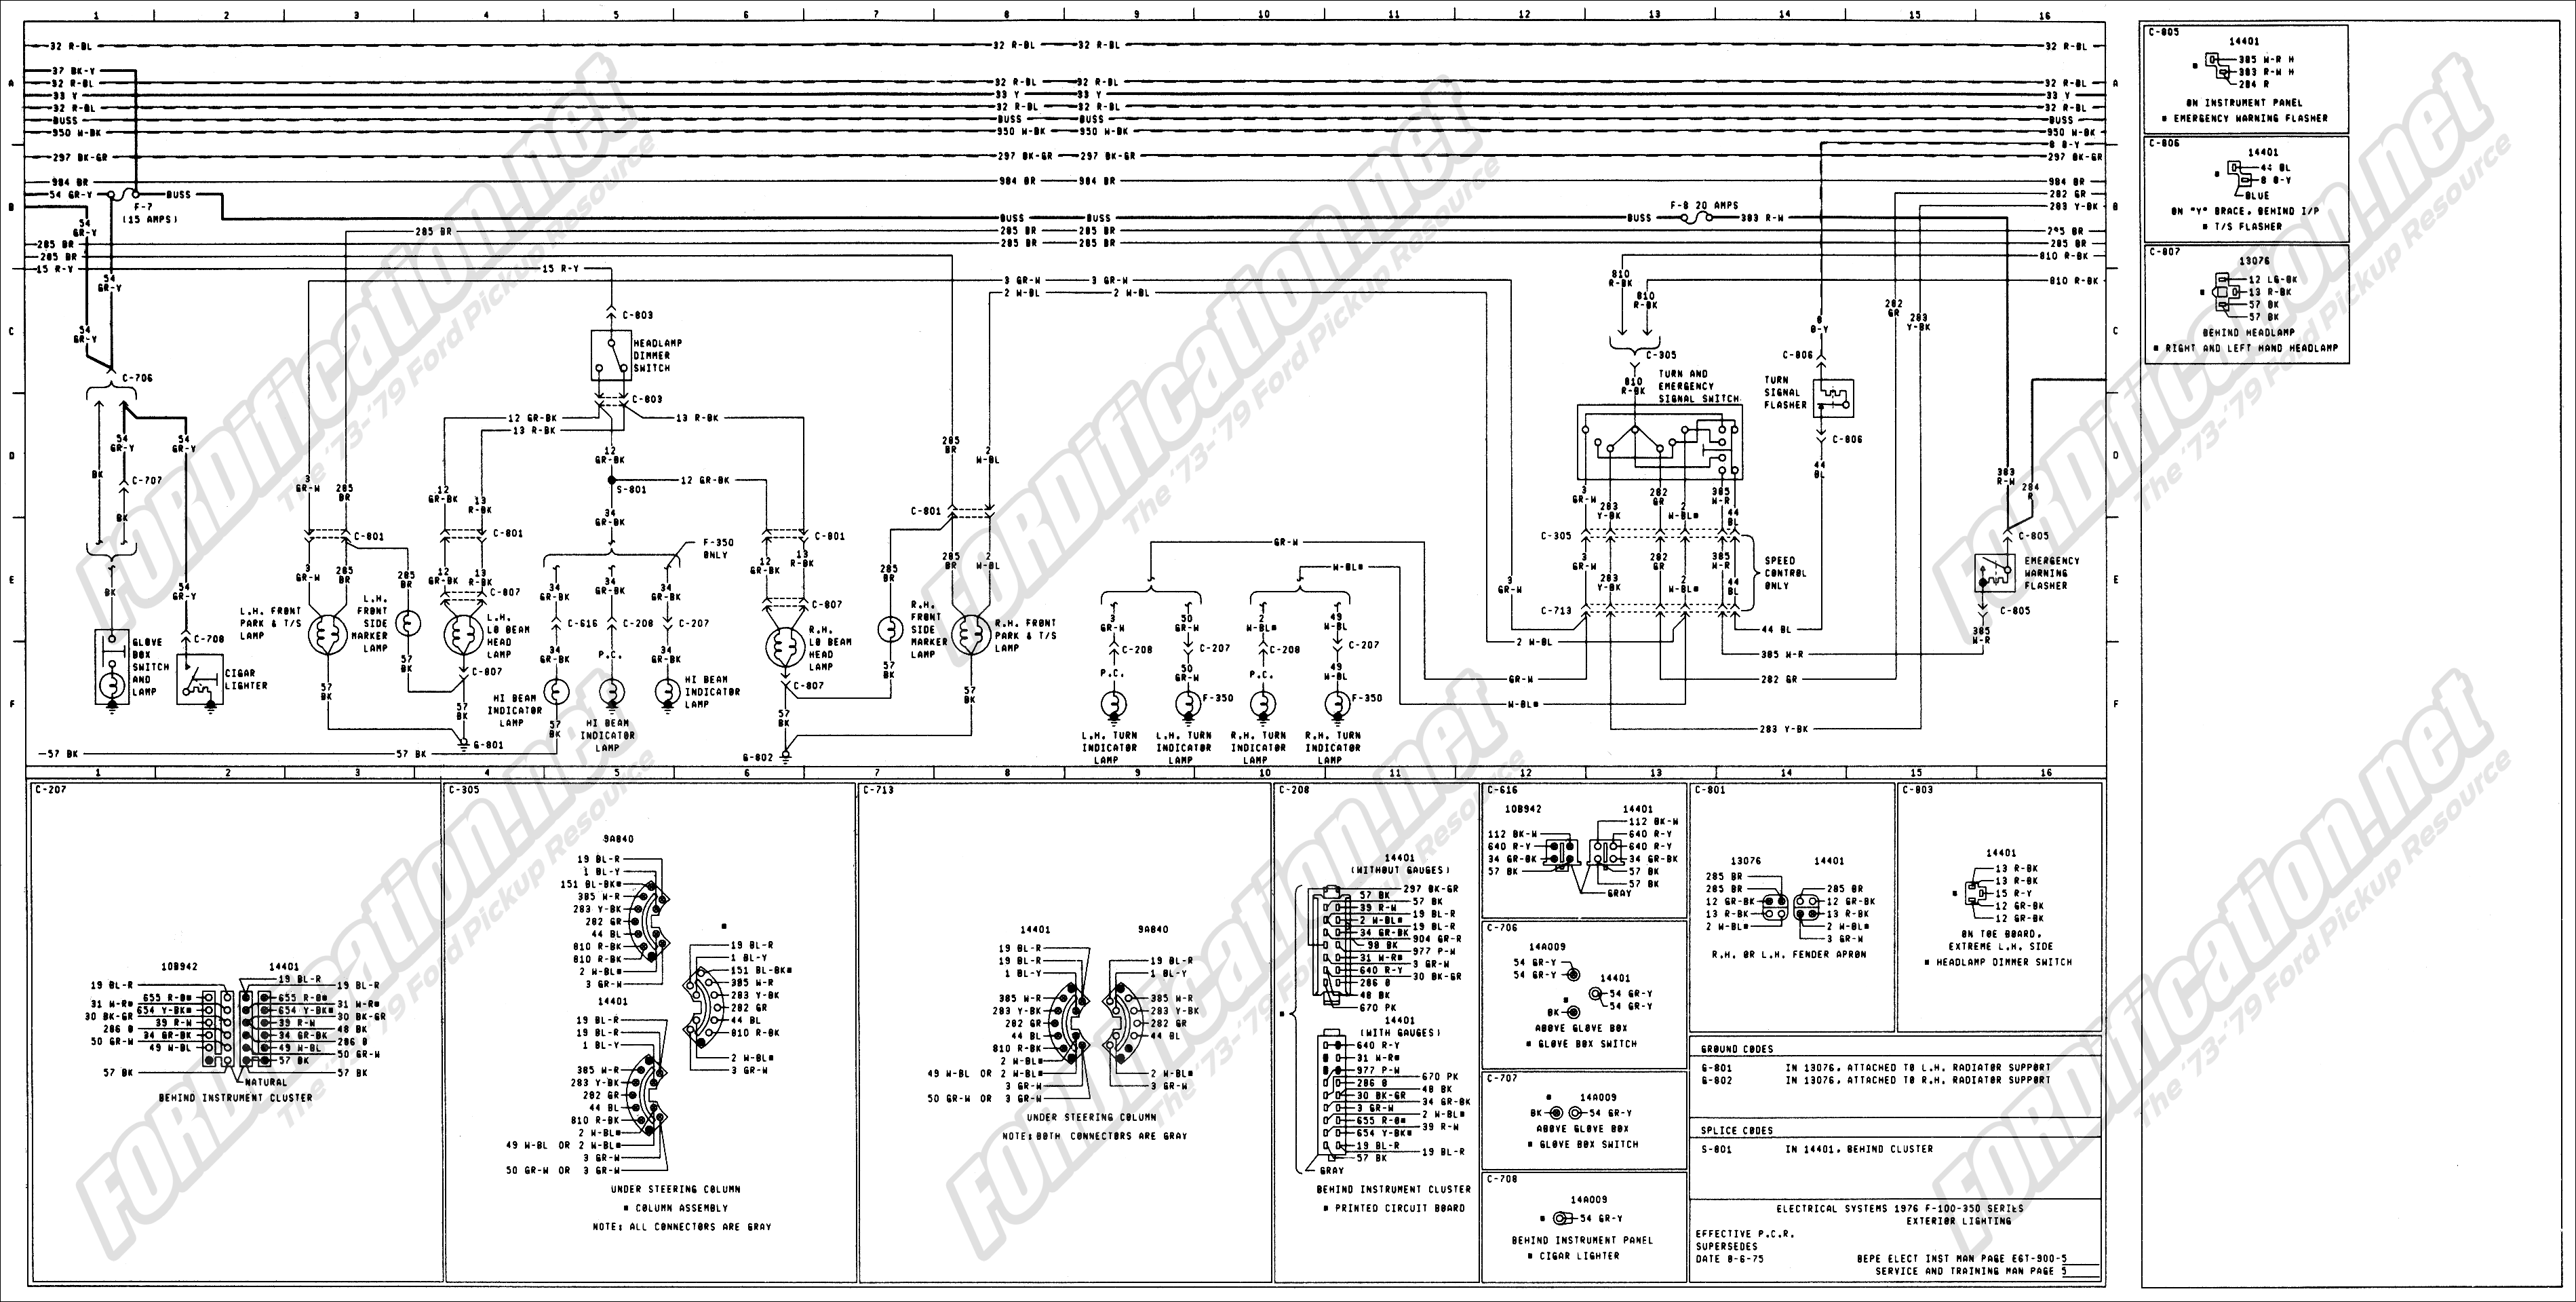 1982 Jeep Cj7 Ignition Wiring Library Cj 7 Diagram Wagoneer Schematics Cj8